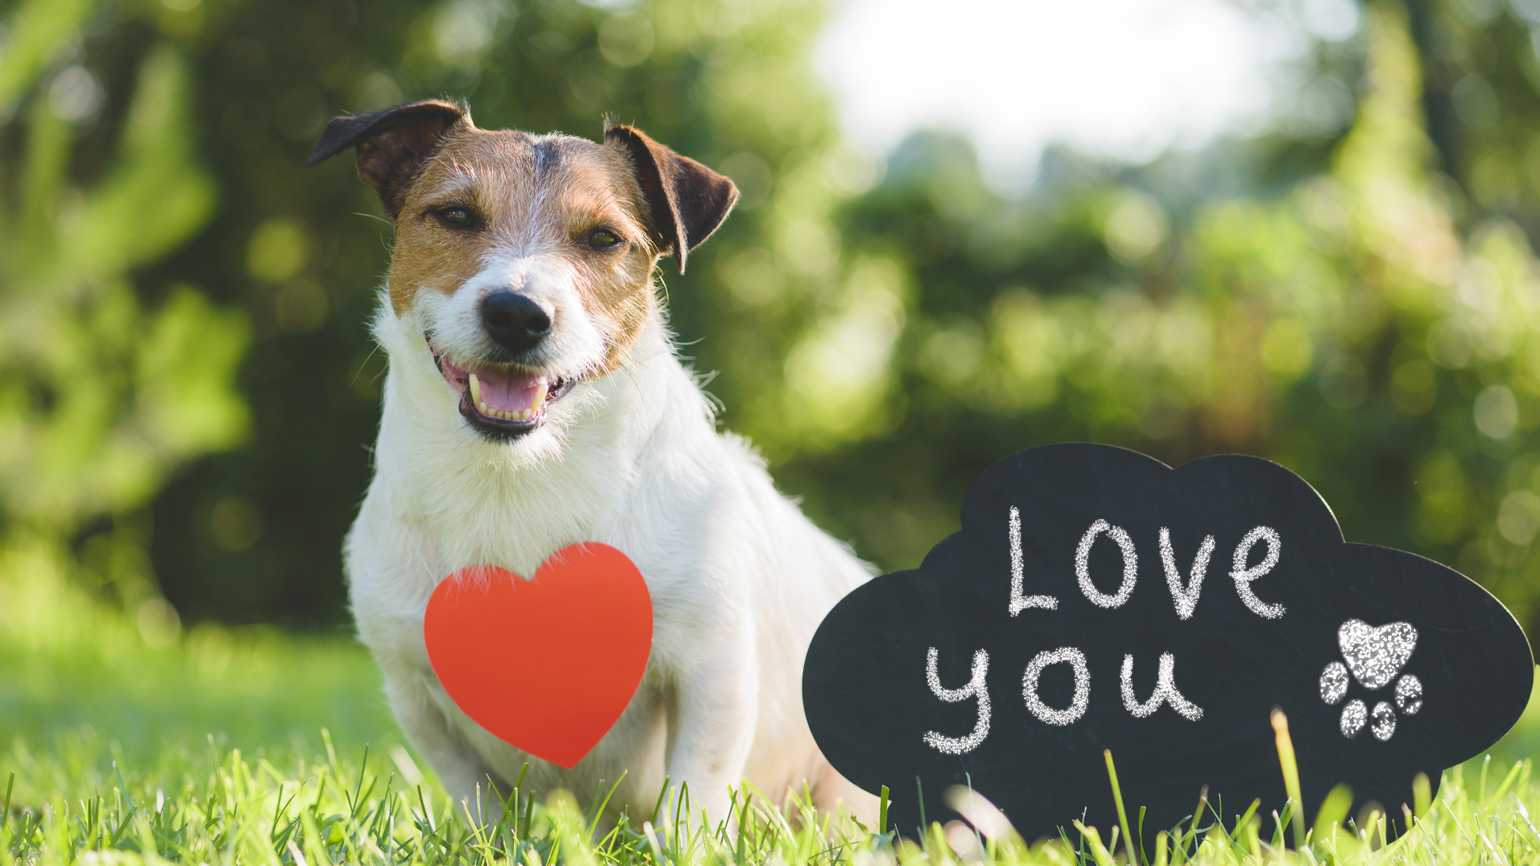 A happy Valentine's Day dog with a heart along with a sign that says 'Love You'.